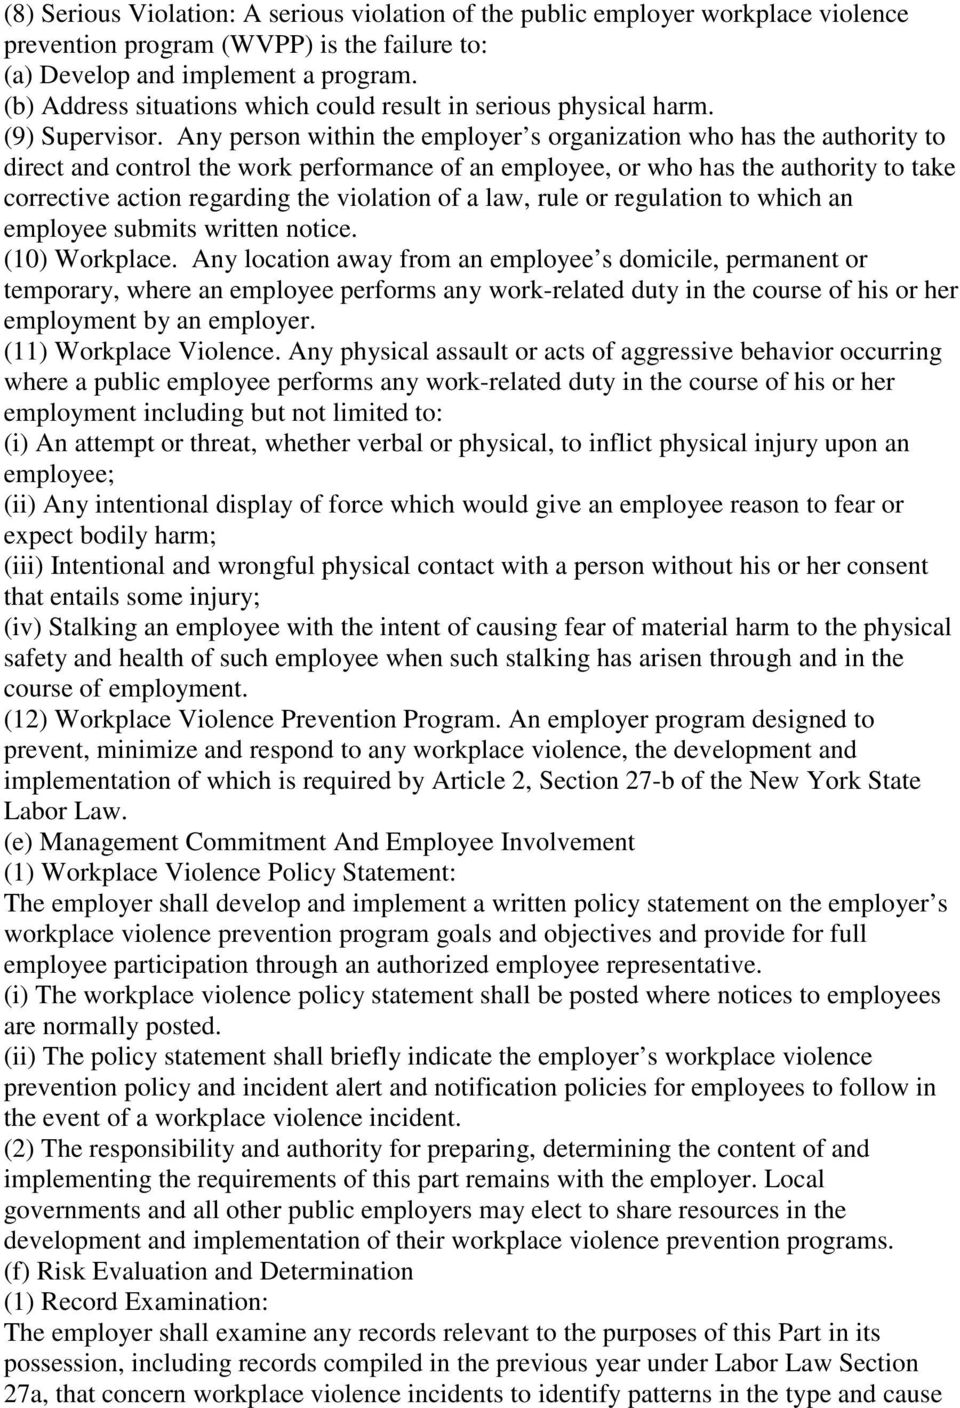 Any person within the employer s organization who has the authority to direct and control the work performance of an employee, or who has the authority to take corrective action regarding the